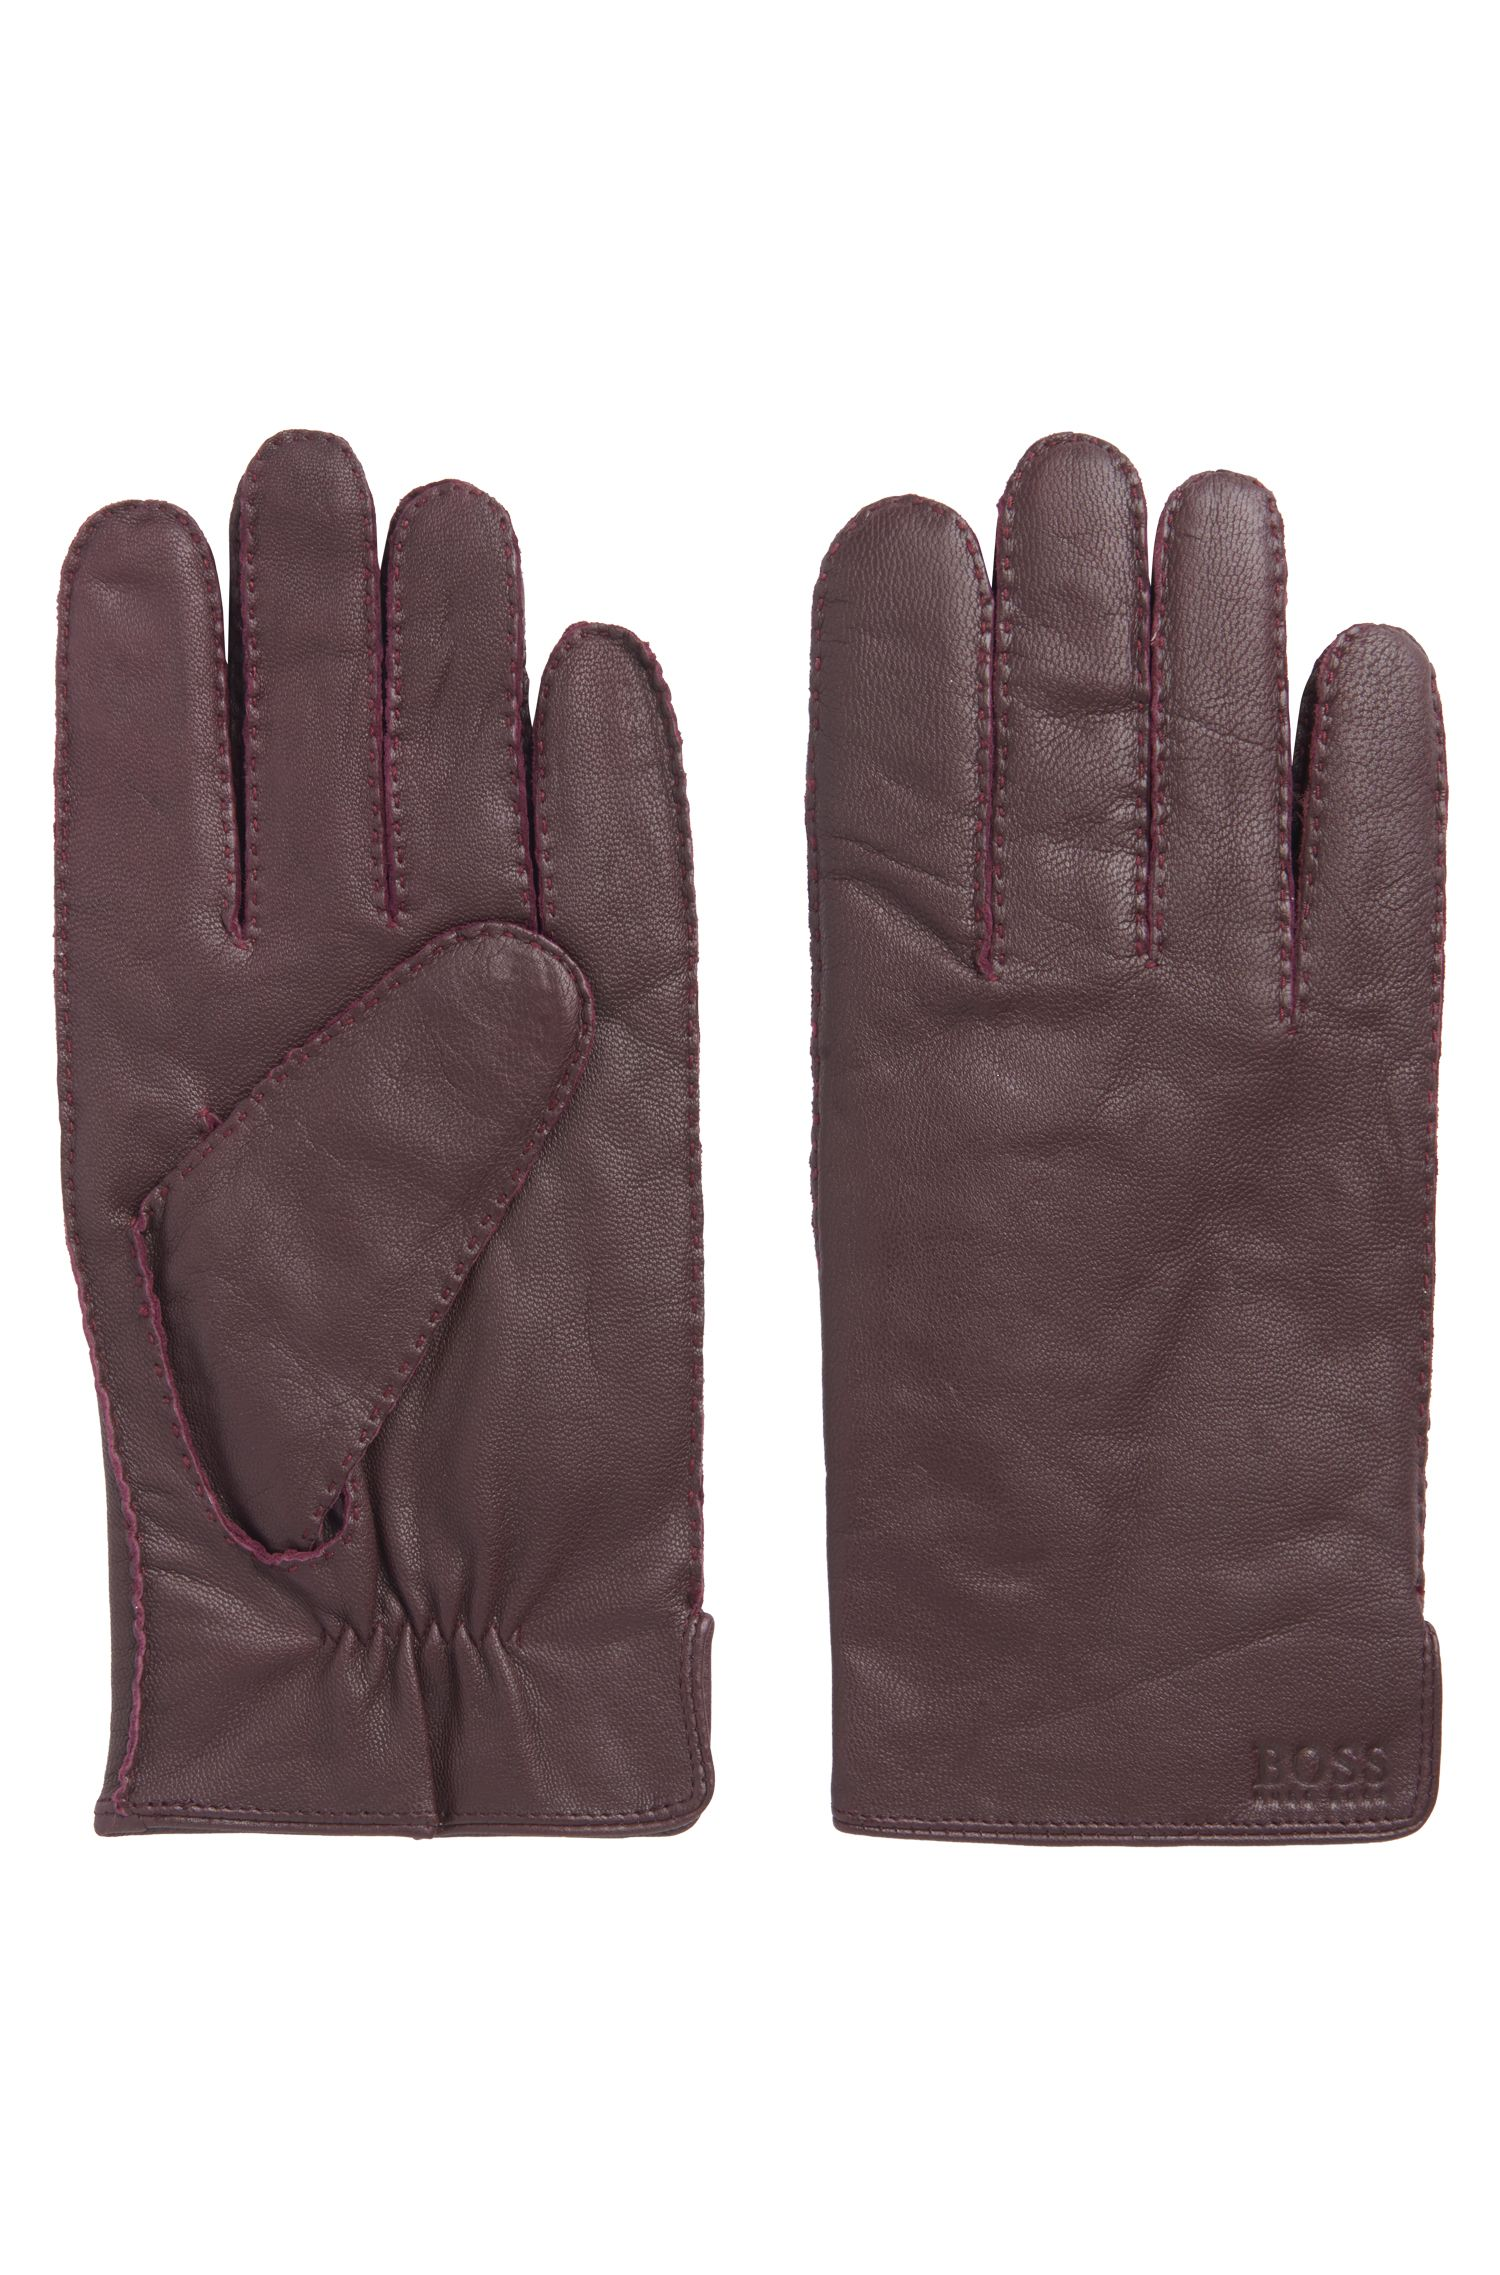 Nappa Leather Gloves | Kranton